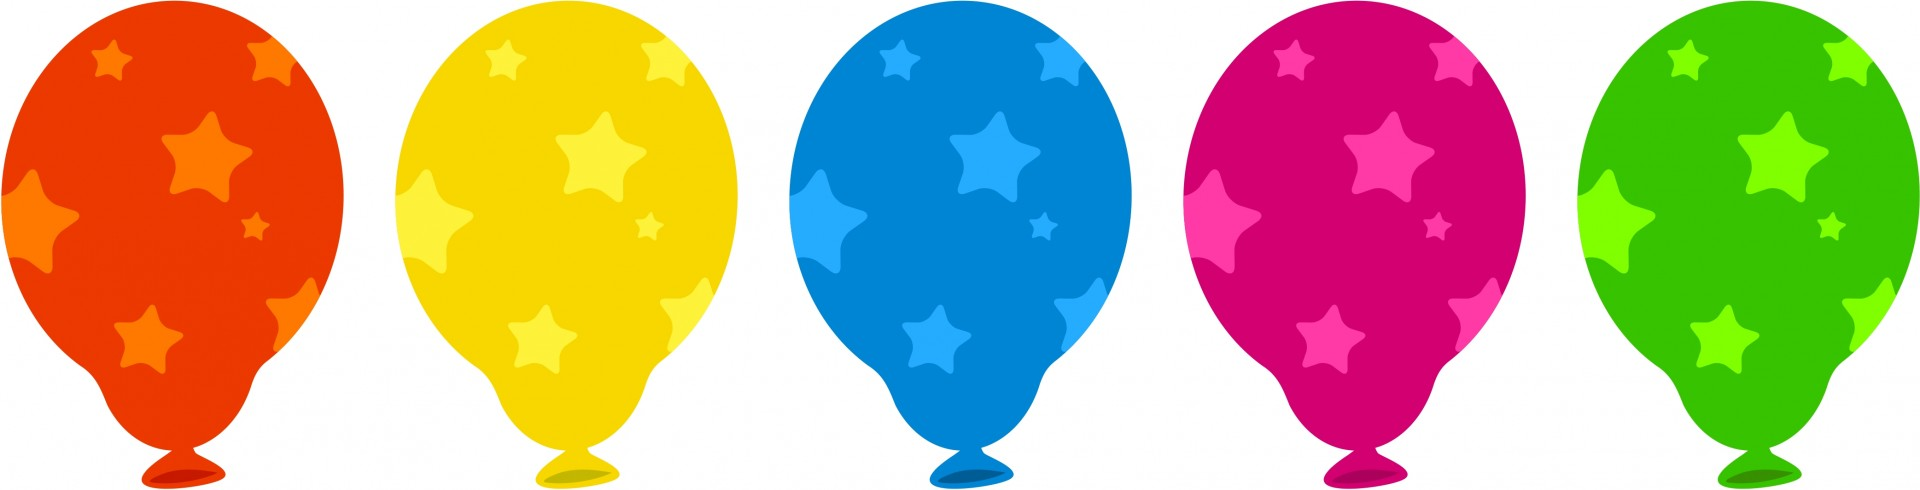 Colourful Balloons Clip Art Free Stock Photo.